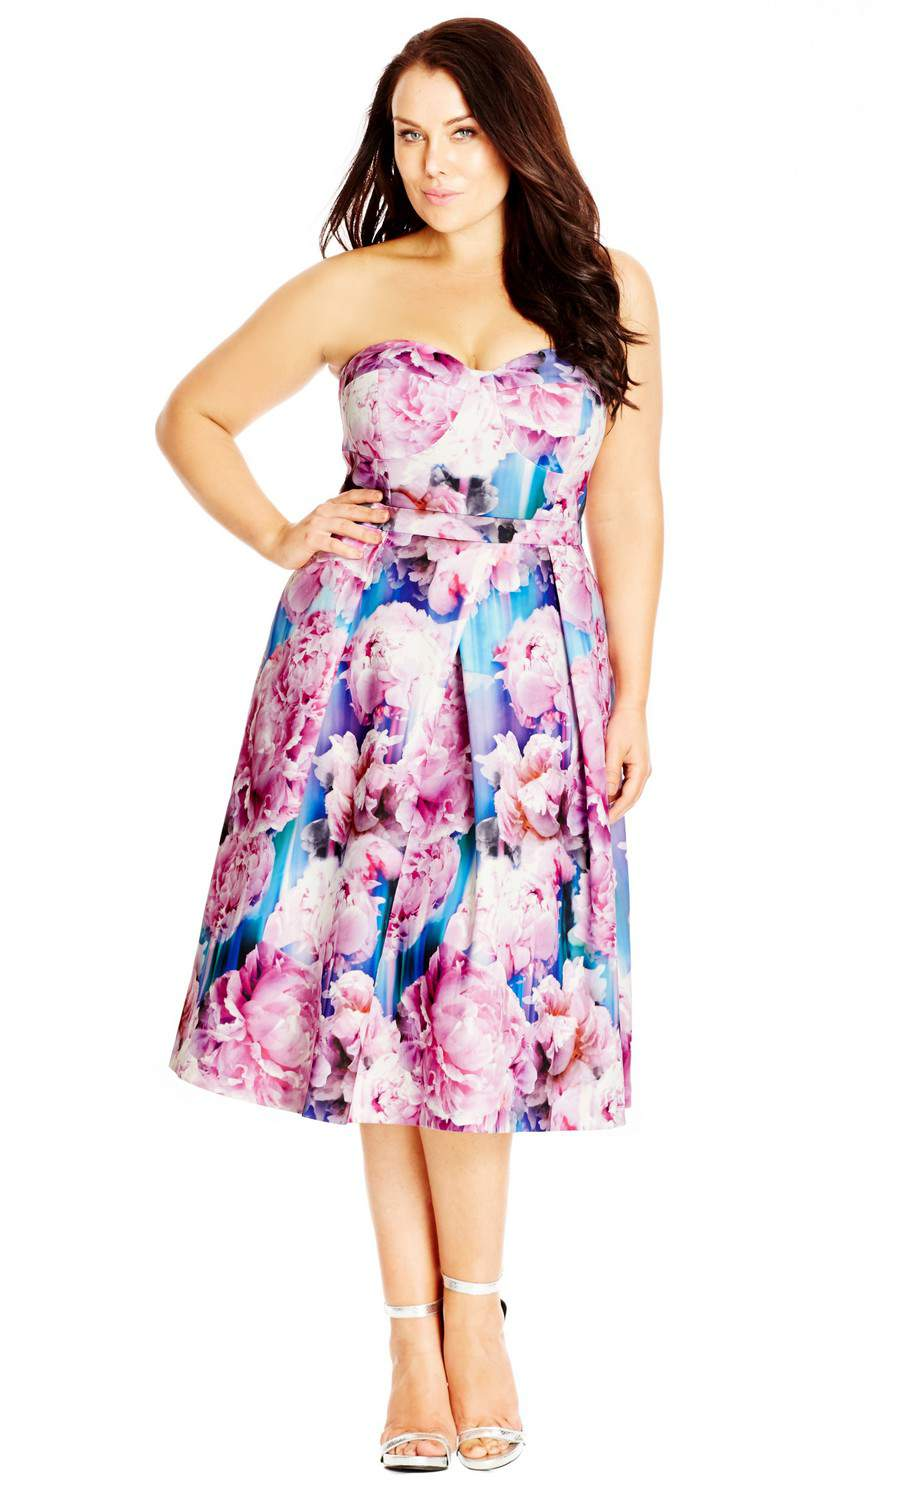 17 Must Rock Plus Size Dresses for that Valentine's Day Date!